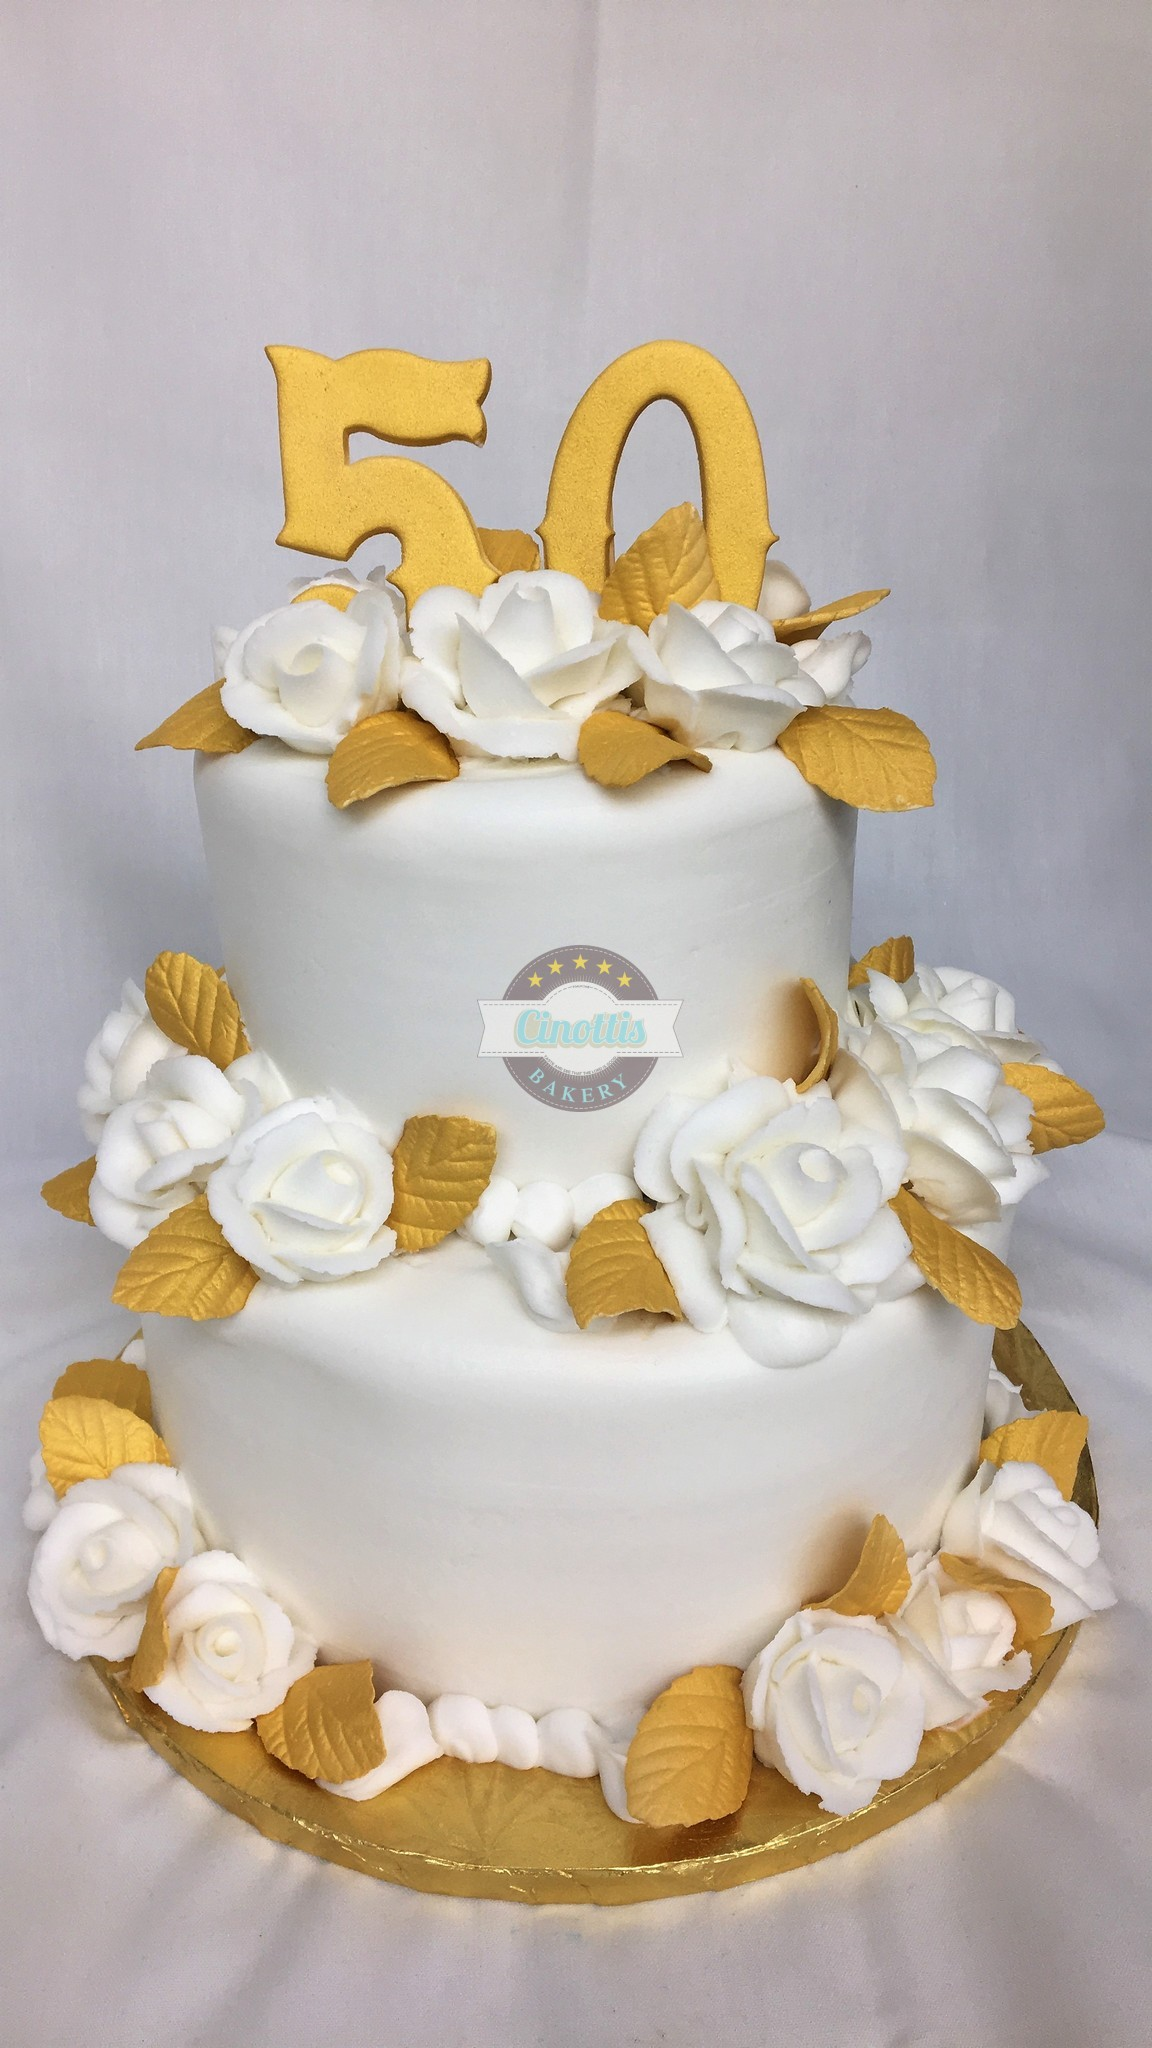 Fiftieth Anniversary, Cake, Wedding, Gold, White, Jacksonville